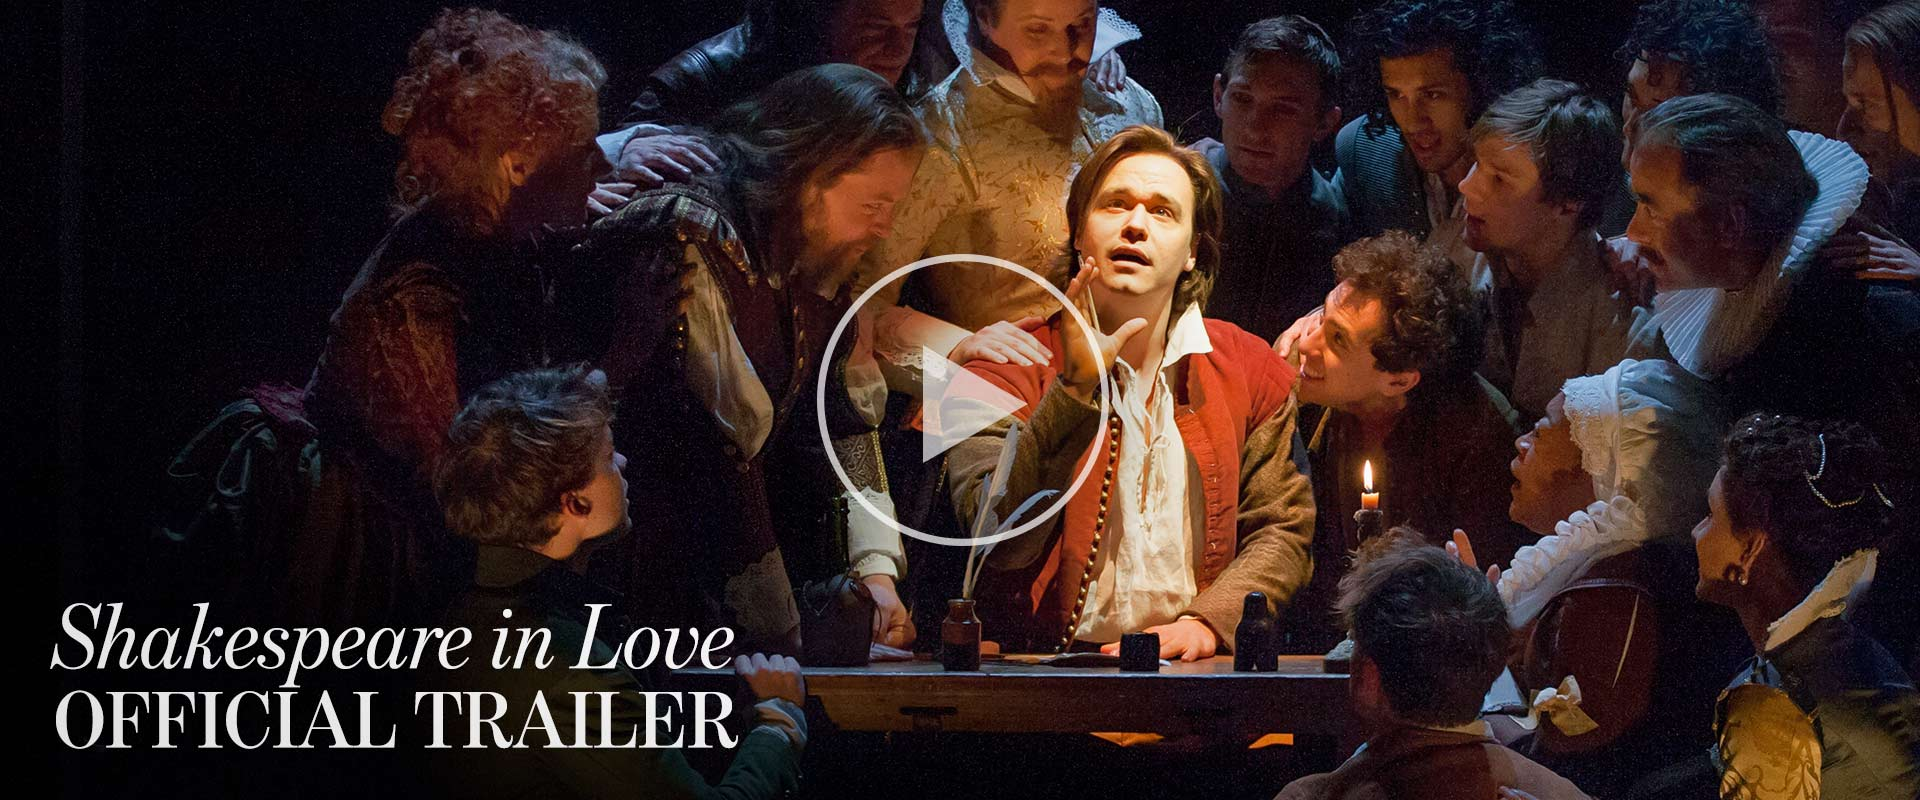 Shakespeare in Love video trailer